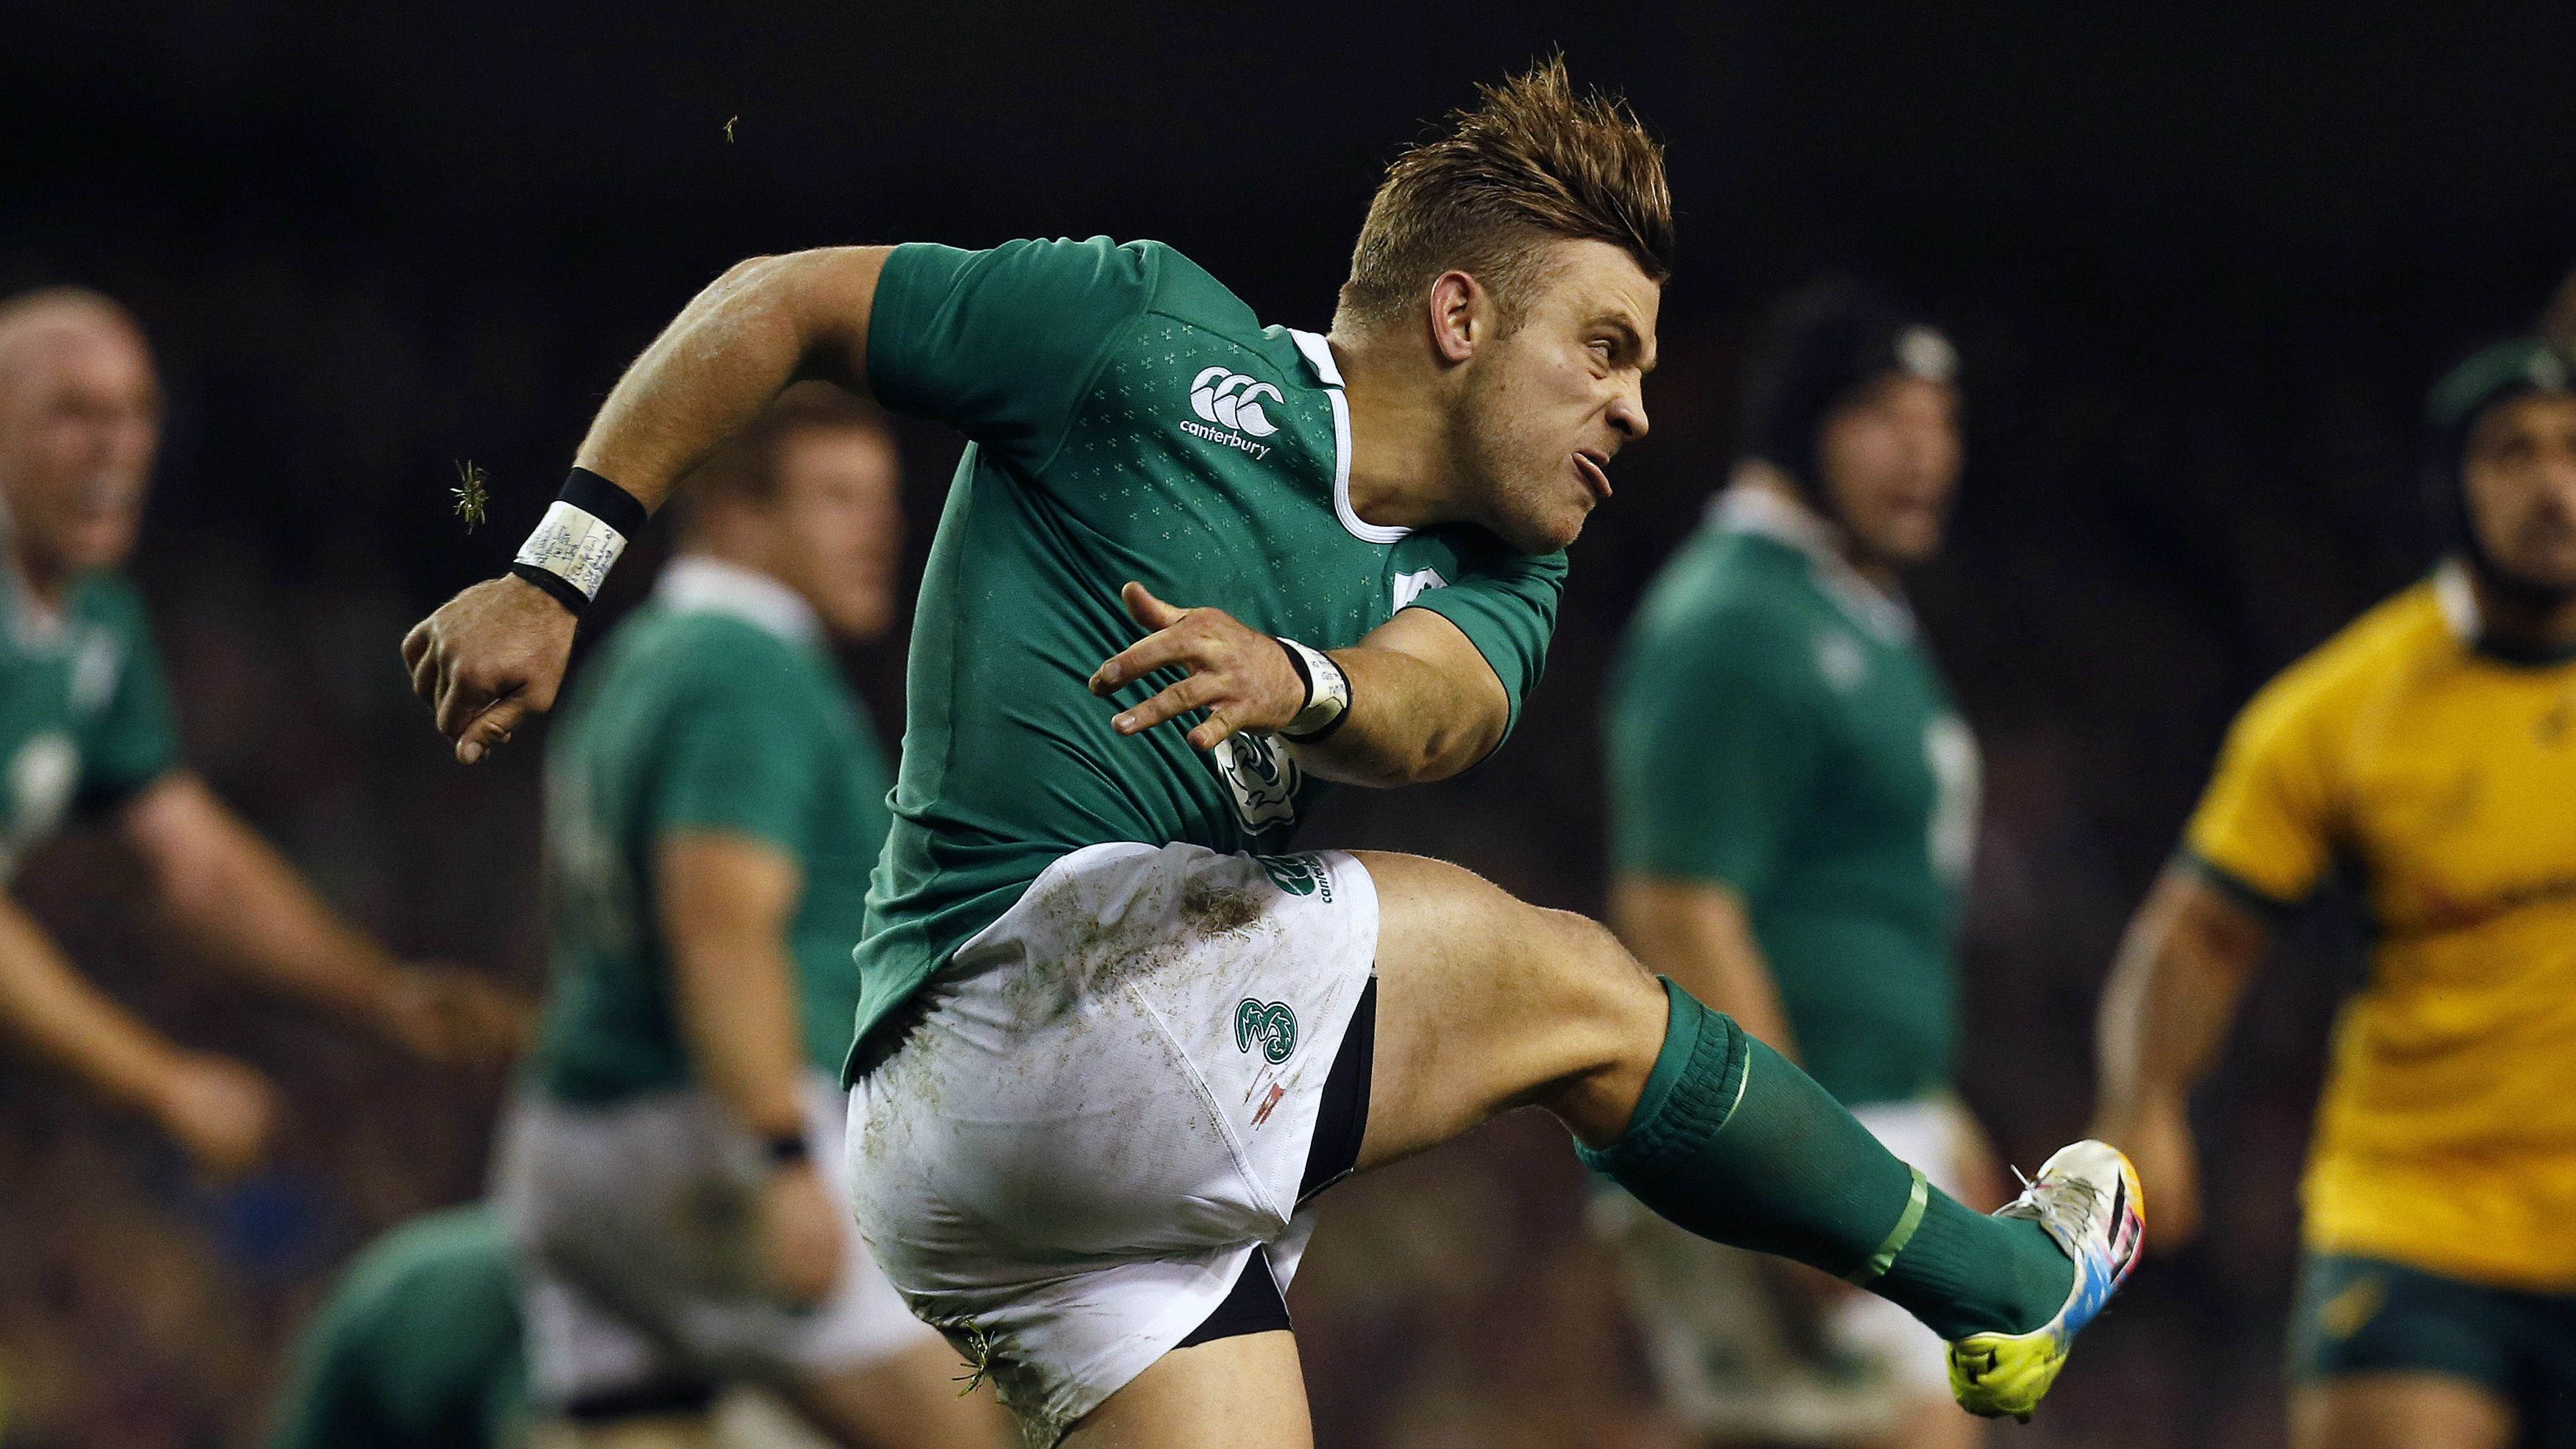 Ireland's Ian Madigan clears the ball against Australia during their international rugby test match at the Aviva Stadium in Dublin November 22, 2014. REUTERS/Cathal McNaughton (IRELAND - Tags: SPORT RUGBY)